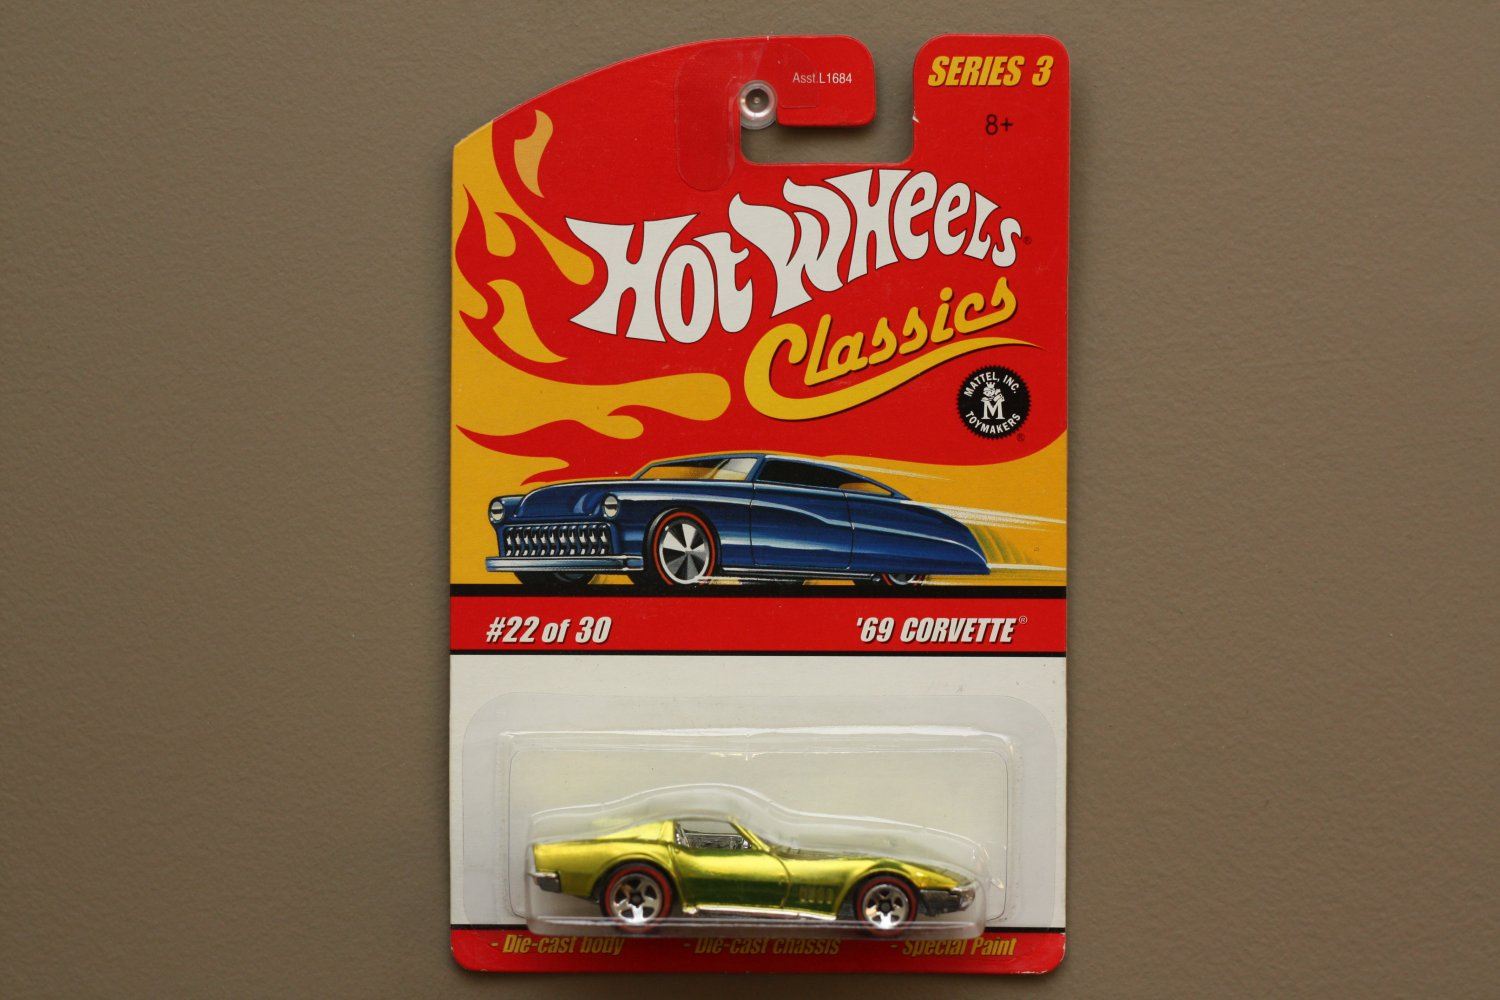 Hot Wheels 2007 Classics Series 3 '69 Corvette (chrome lime green)